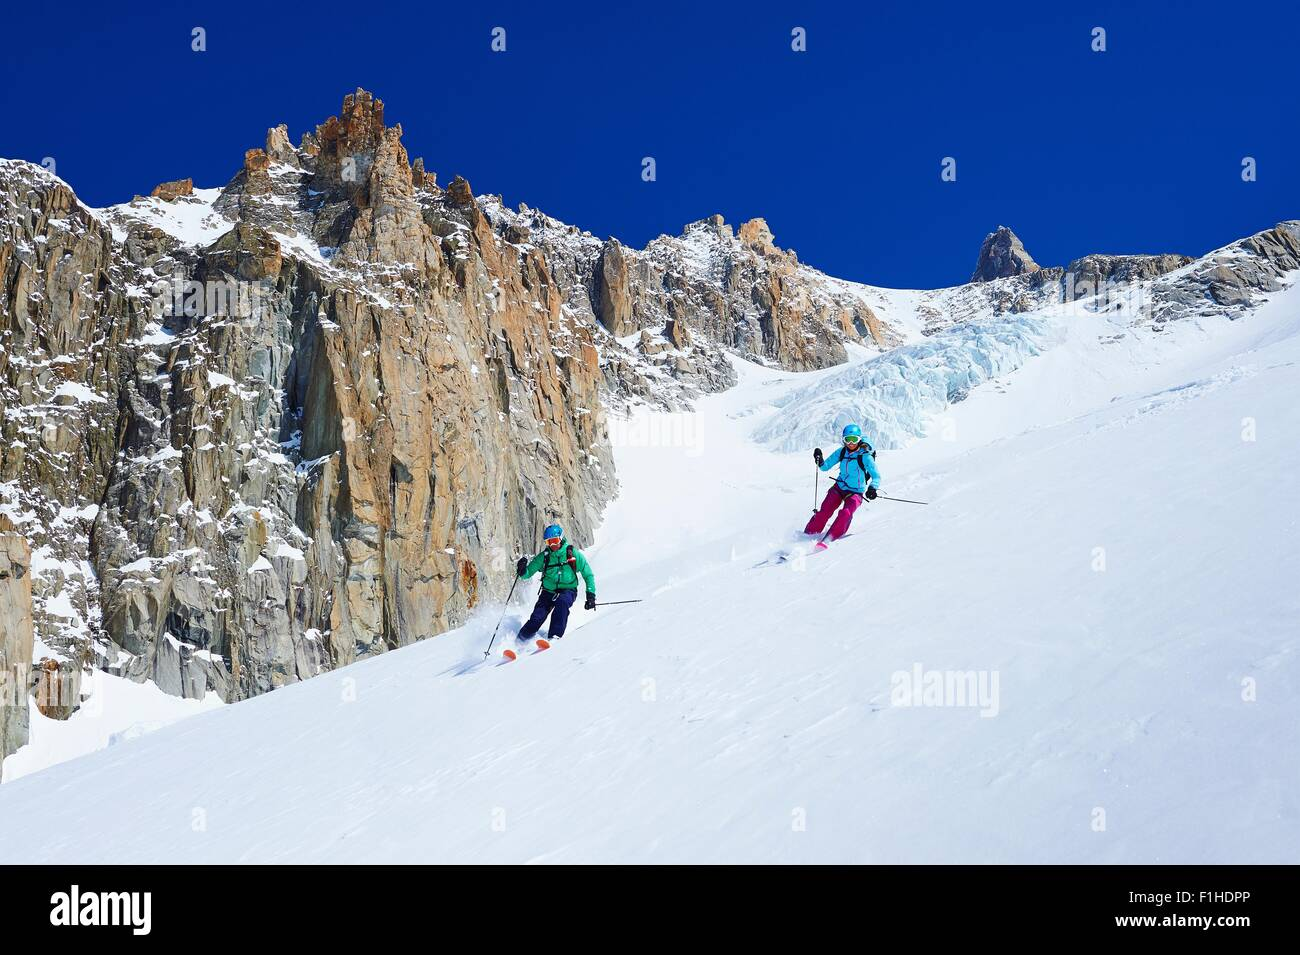 Male and female skiers skiing down Mont Blanc massif, Graian Alps, France - Stock Image